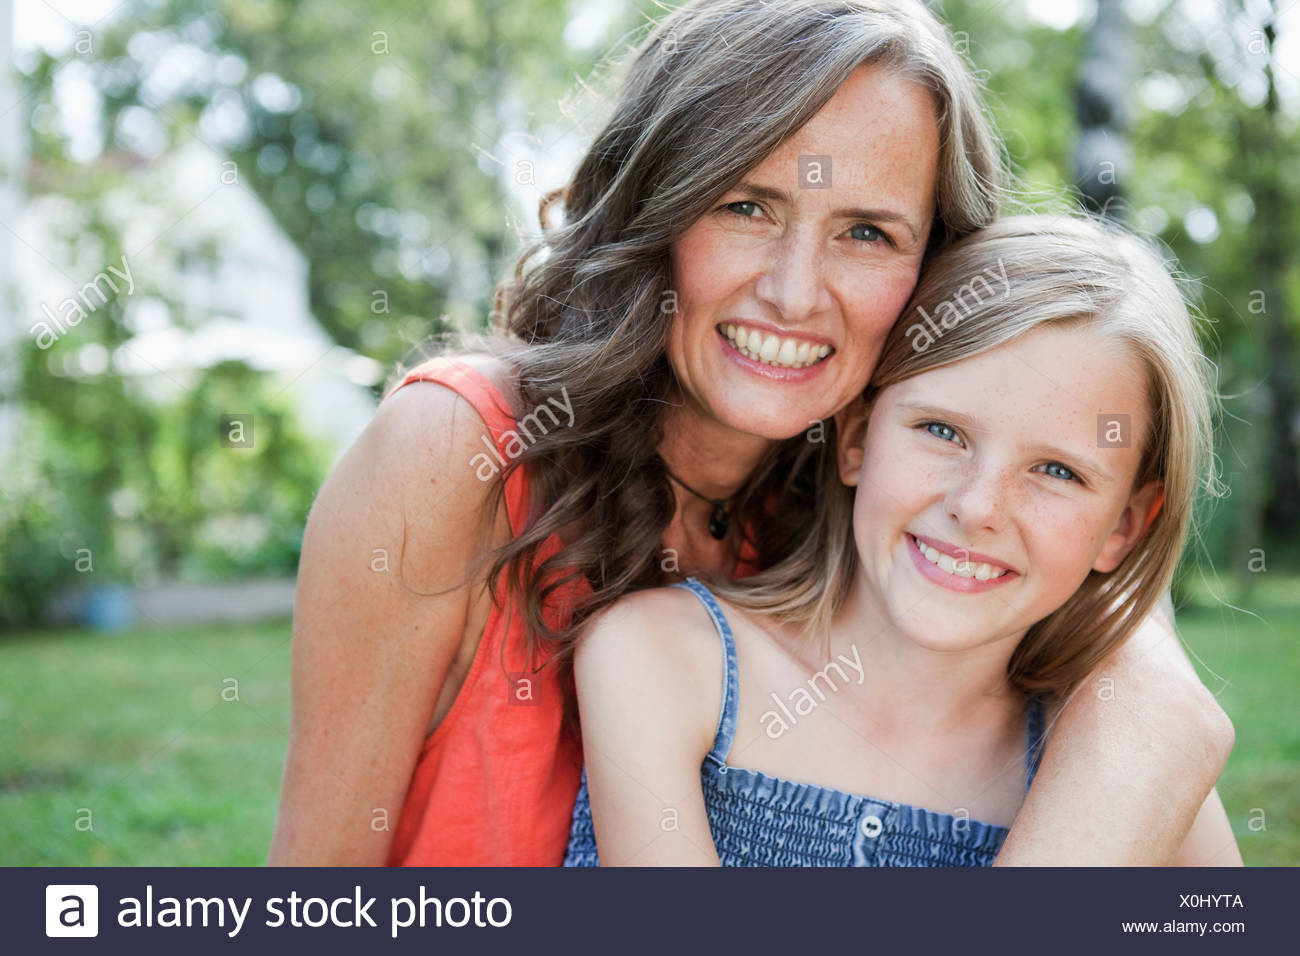 Mother and sister self girl